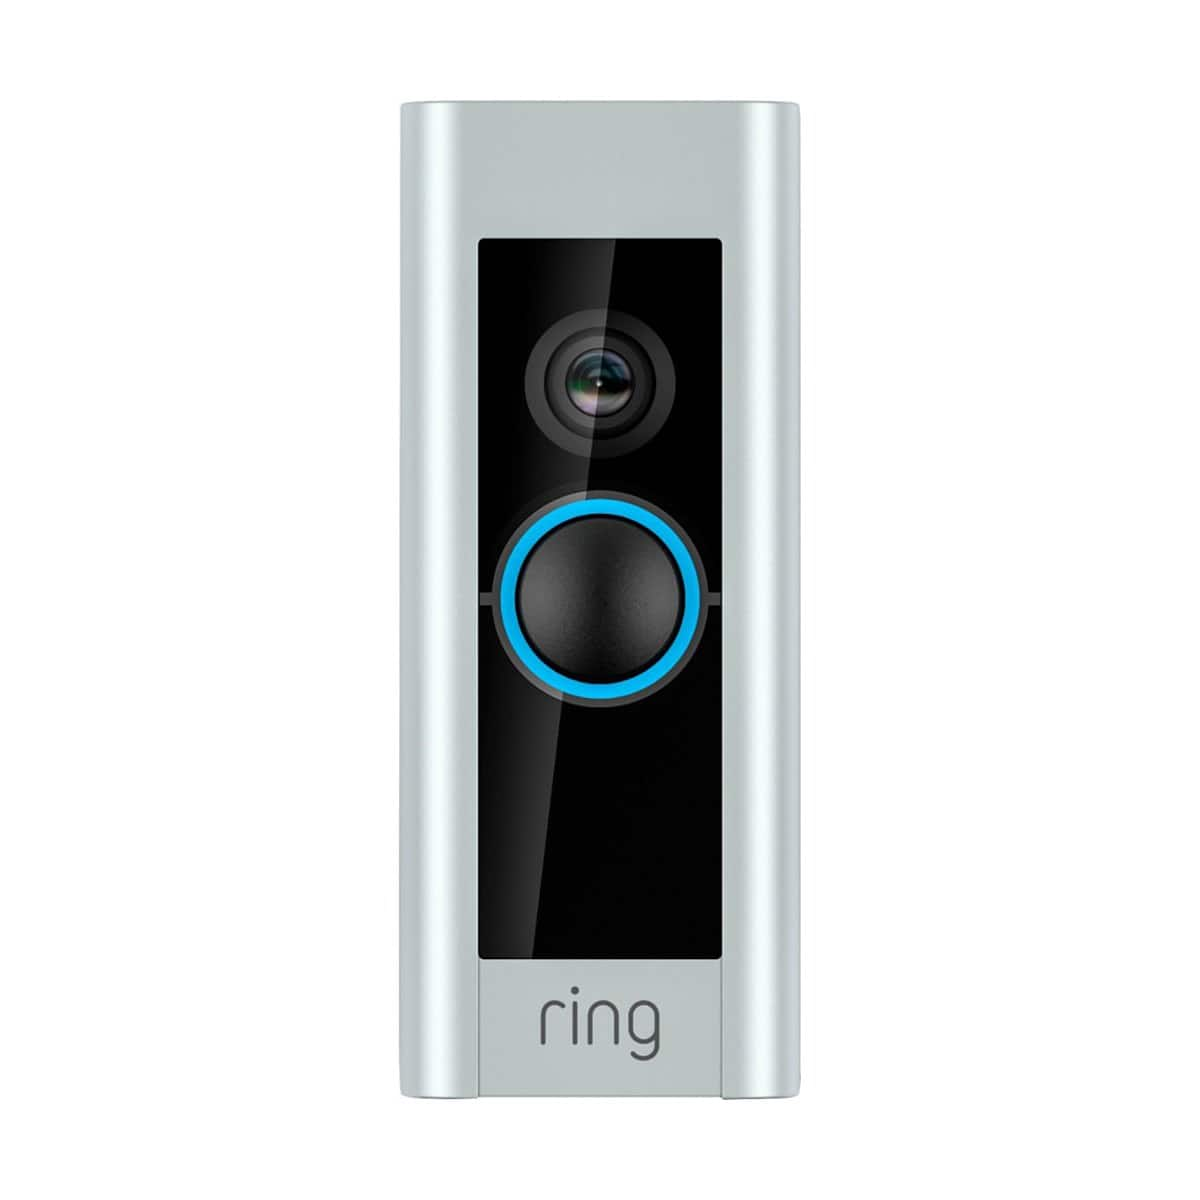 Ring Video Doorbell Pro WiFi 1080P HD Camera with Night Vision - Satin Nickel (88LP000CH000) $159.75 + Free Shipping